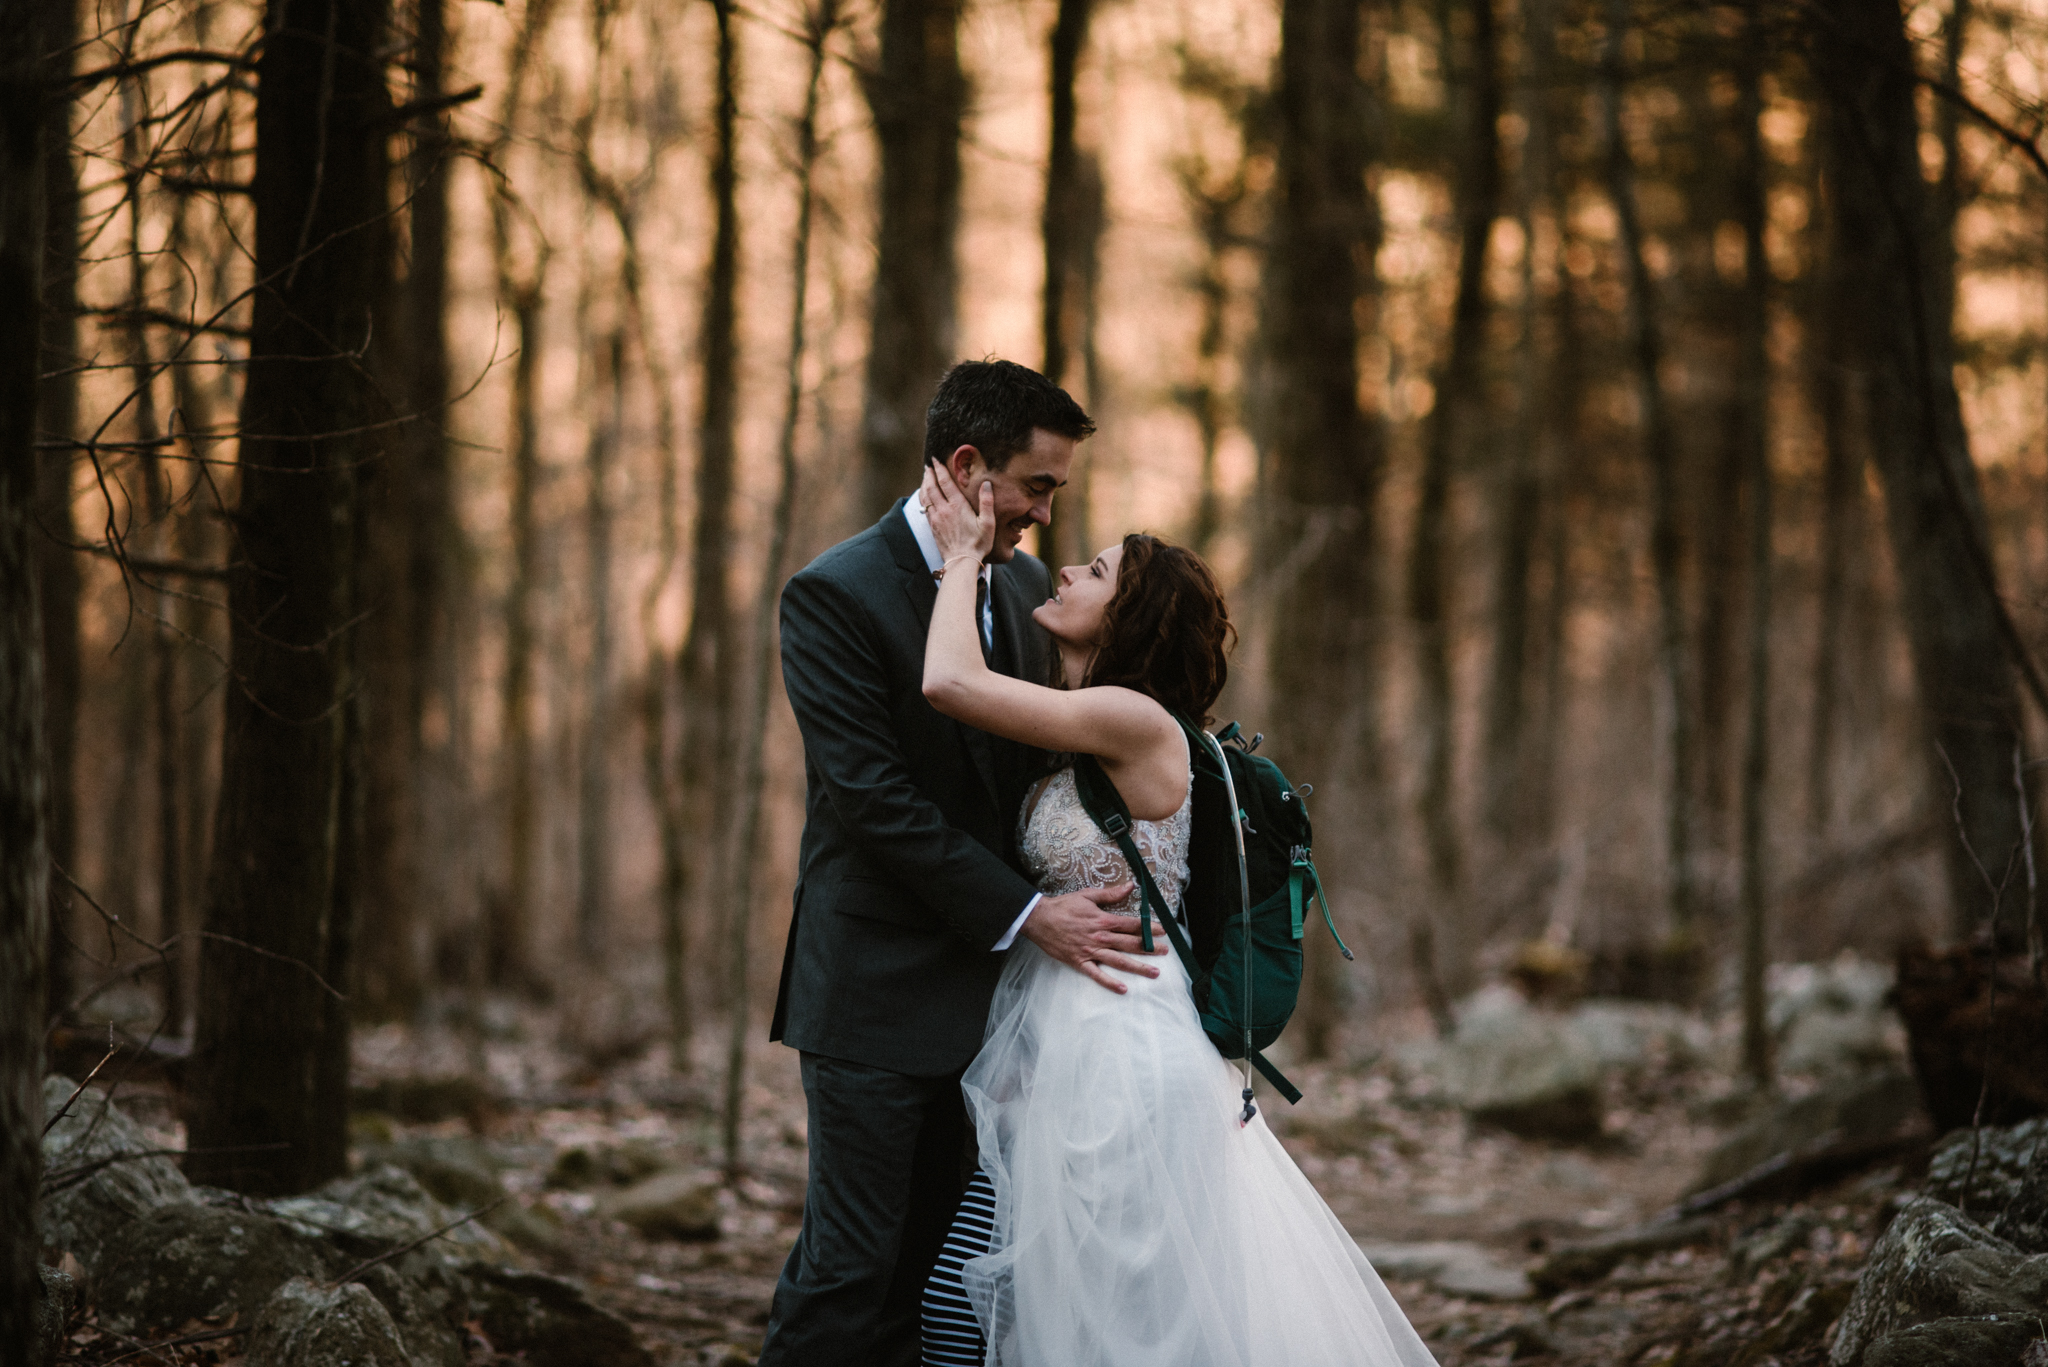 Stephanie and Steve - Shenandoah National Park Elopement - Sunrise Hiking Elopement - Adventurous Elopement - Virginia Elopement Photographer - Shenandoah national Park Wedding Photographer - White Sails Creative_43.jpg